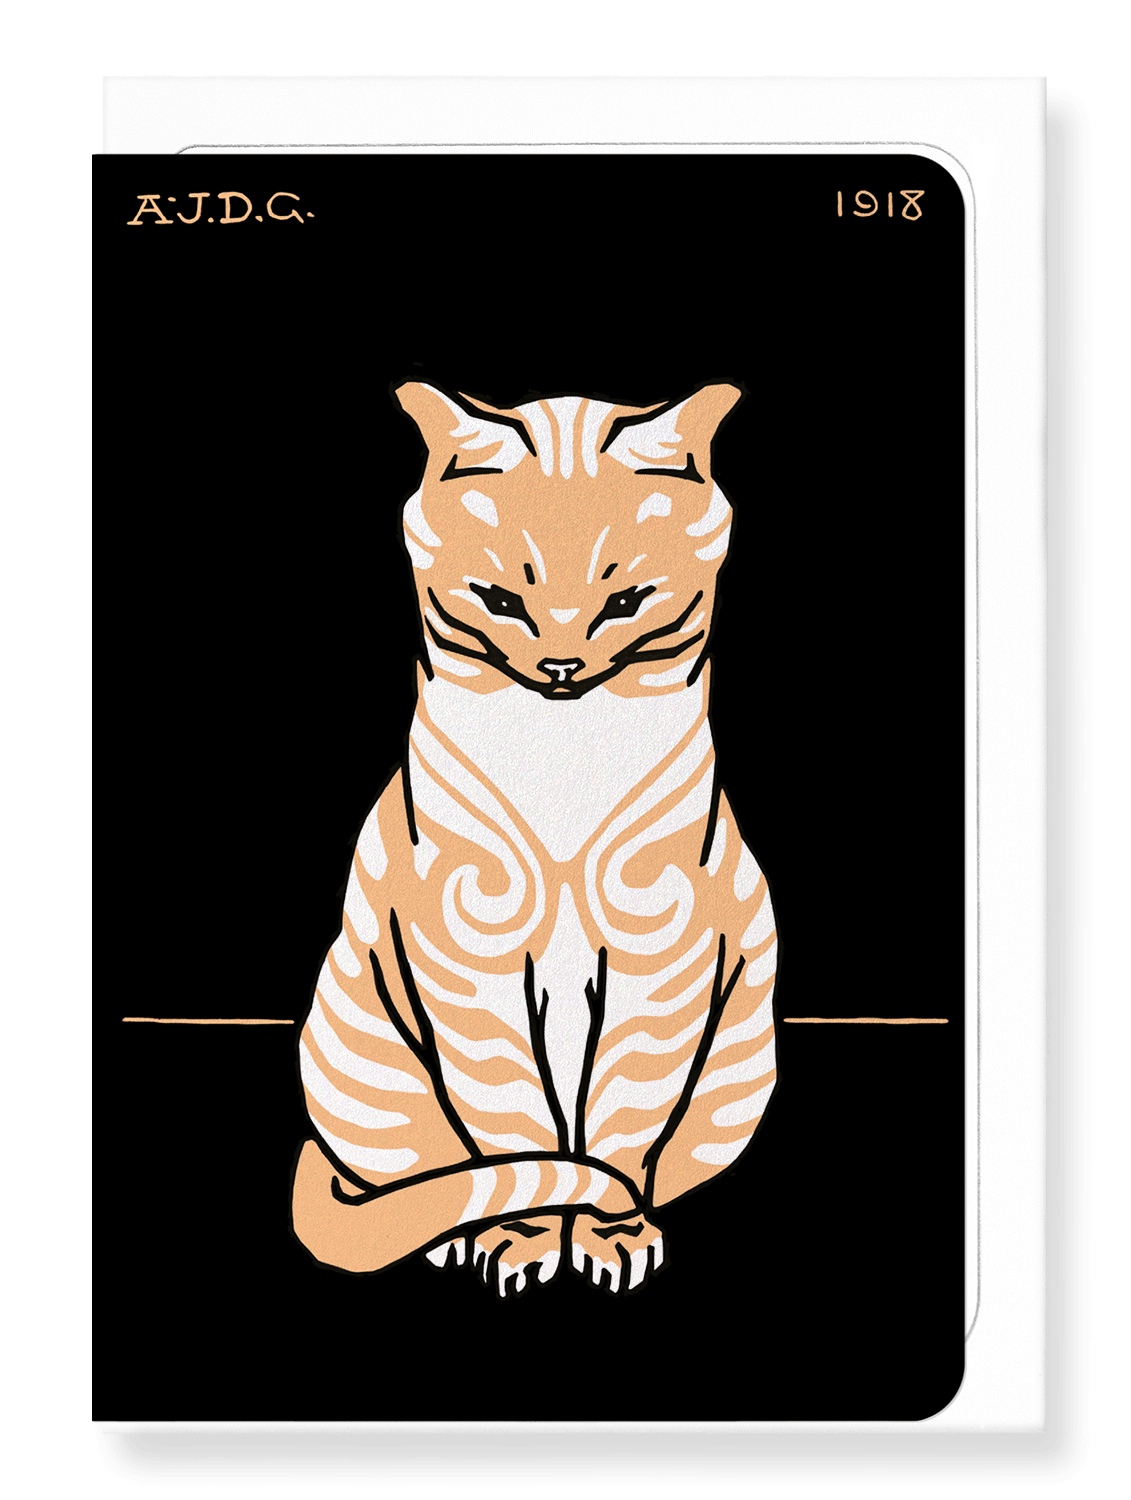 Ezen Designs - Sitting cat (1918) - Greeting Card - Front